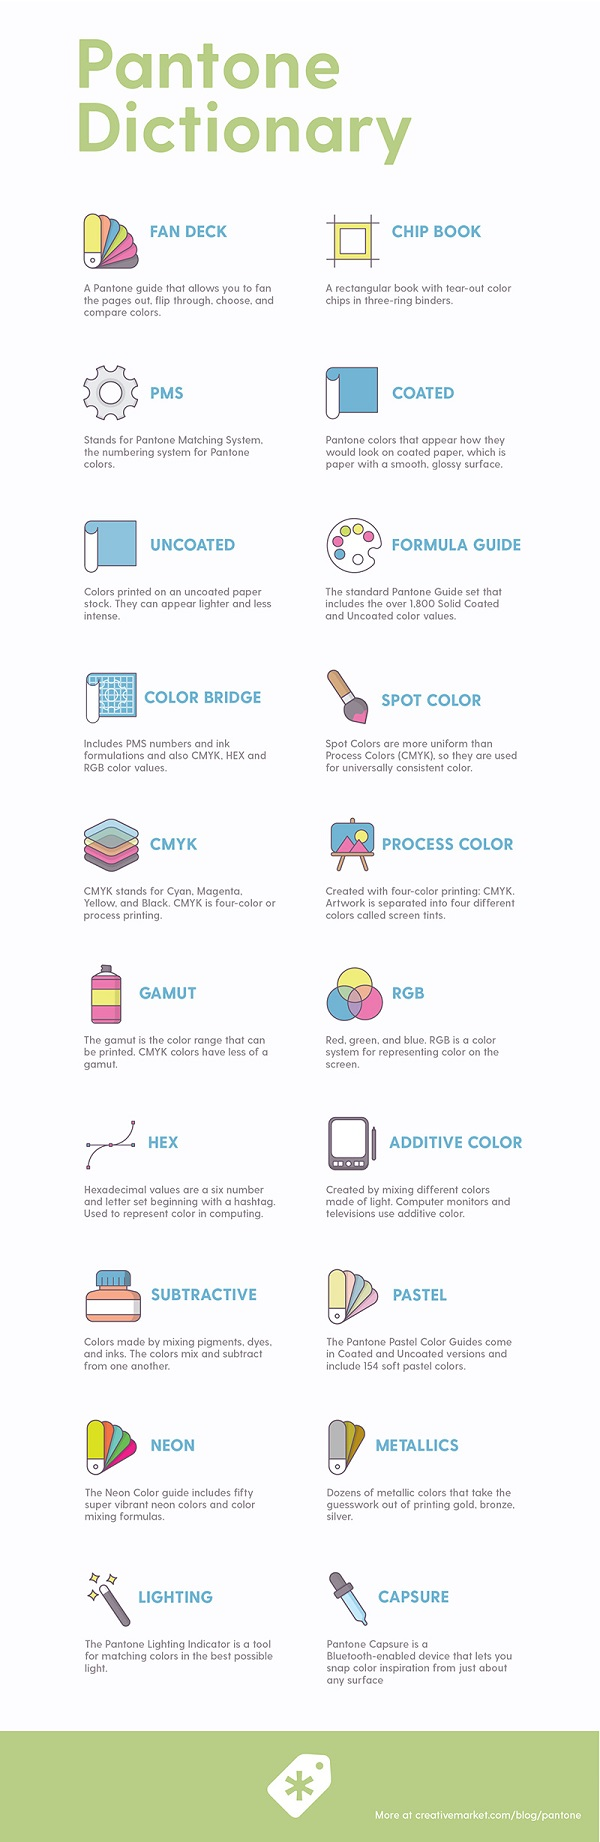 Infographic: 20 PANTONE Terms You Should Know And Understand